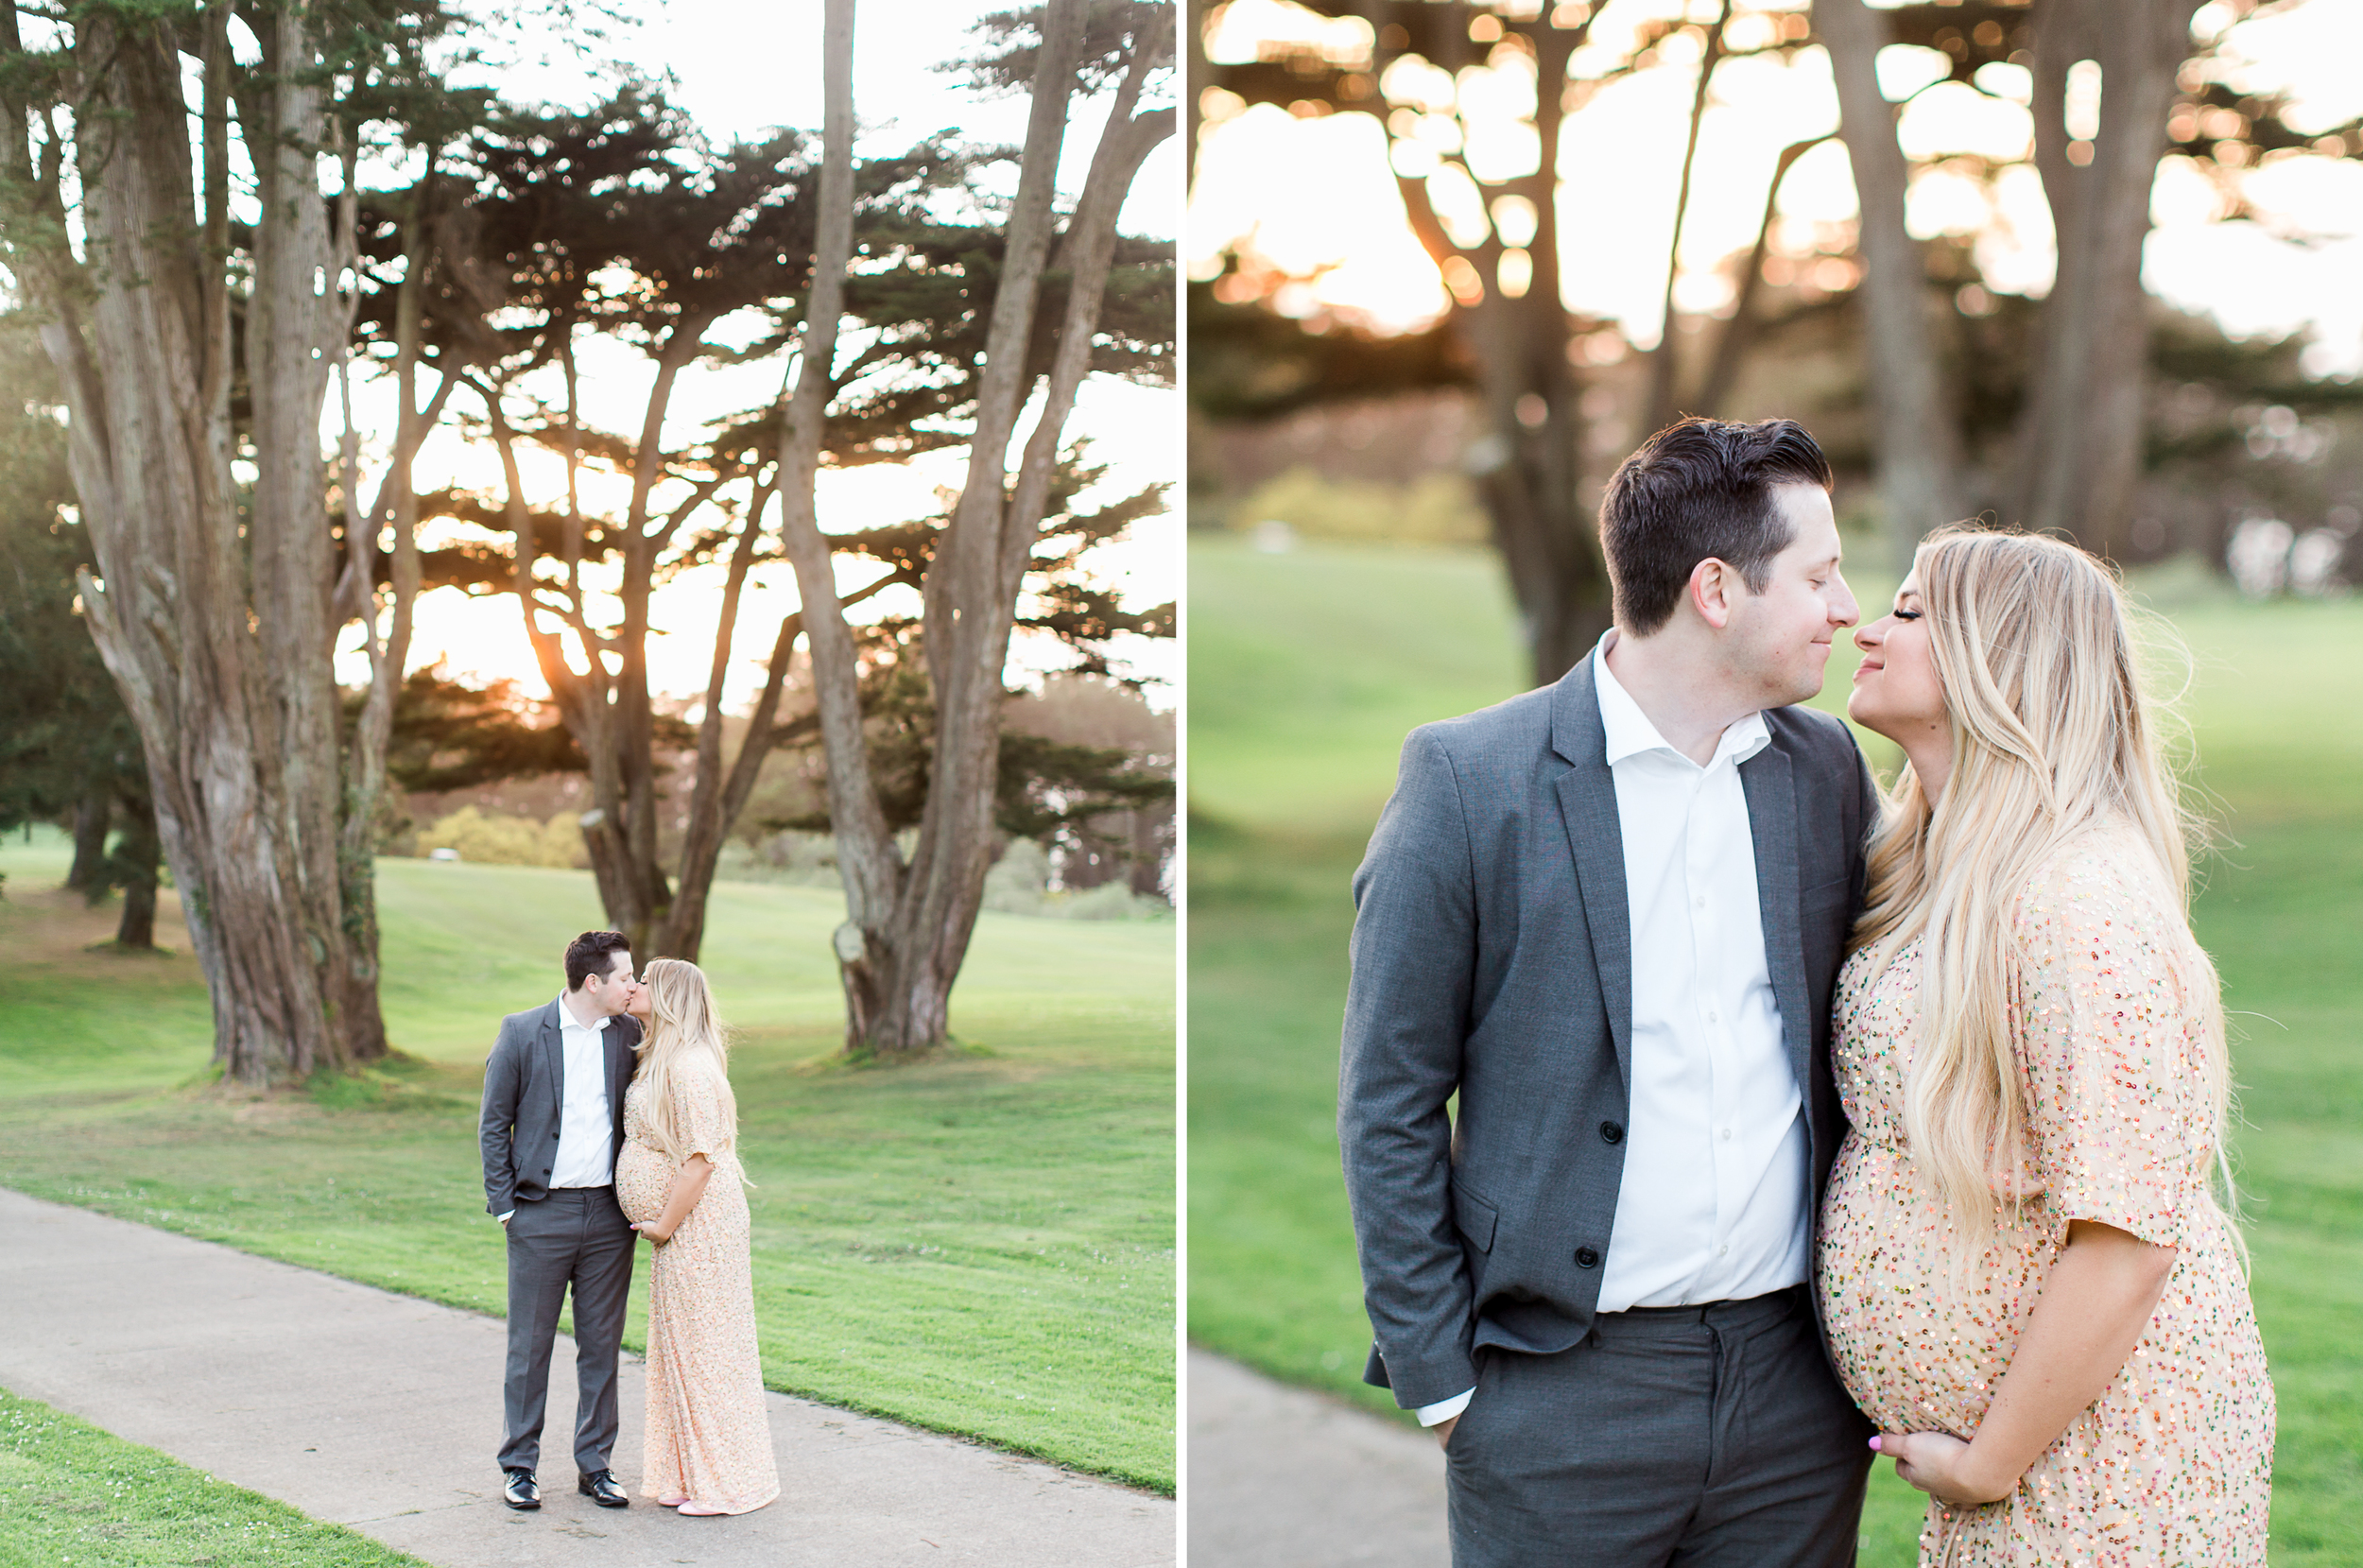 legion-of-honor-san-francisco-maternity-photography.jpg